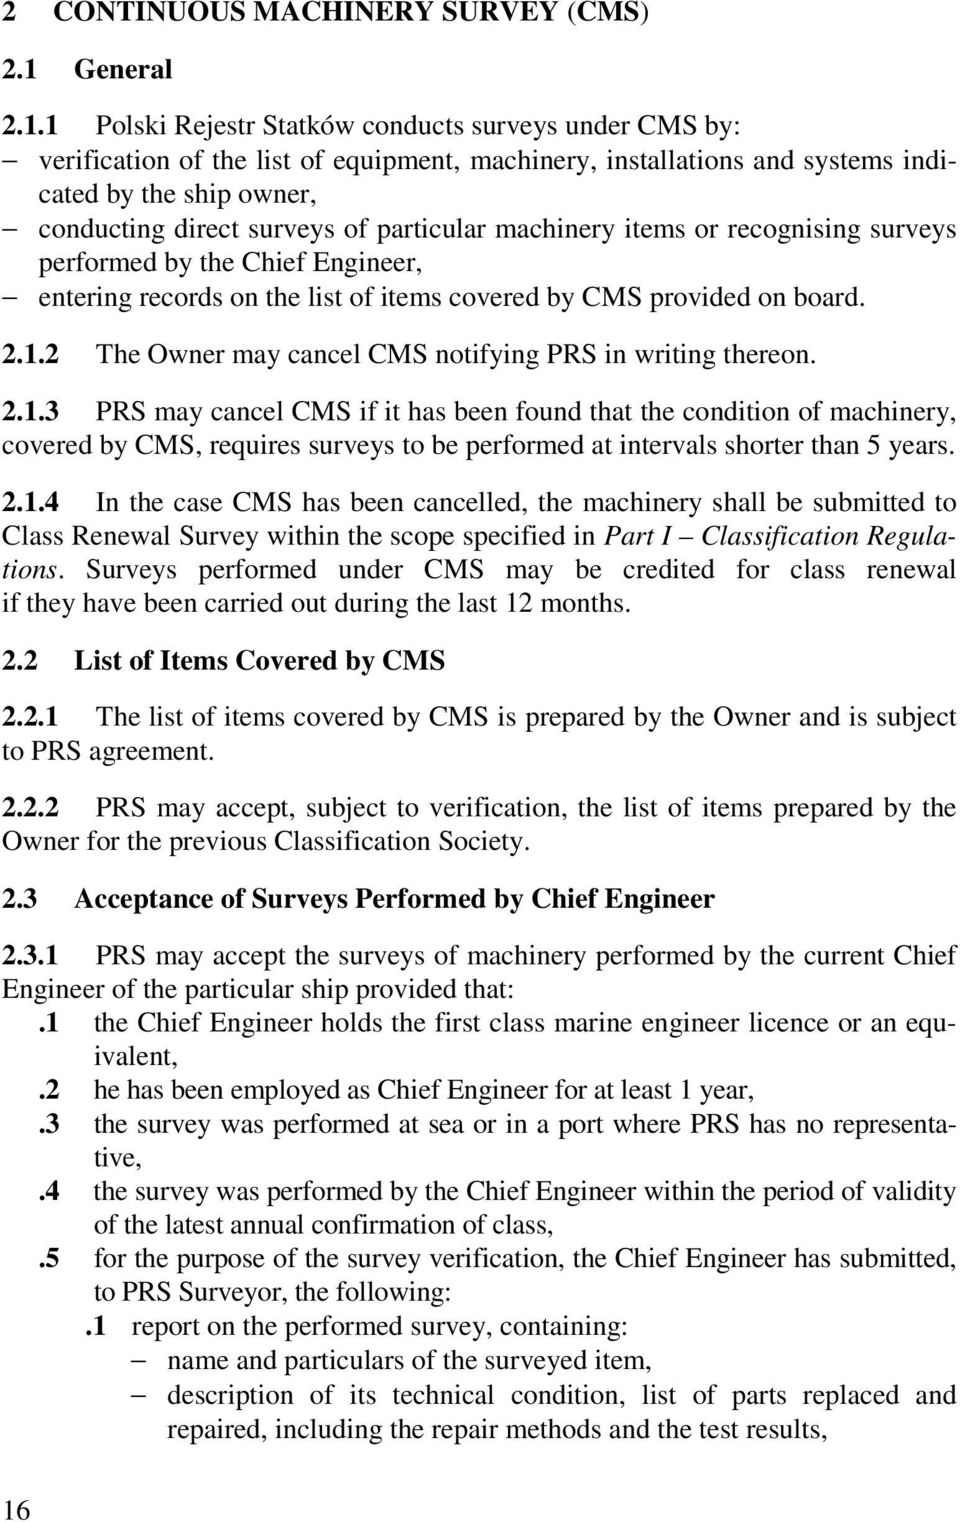 1 Polski Rejestr Statków conducts surveys under CMS by: verification of the list of equipment, machinery, installations and systems indicated by the ship owner, conducting direct surveys of